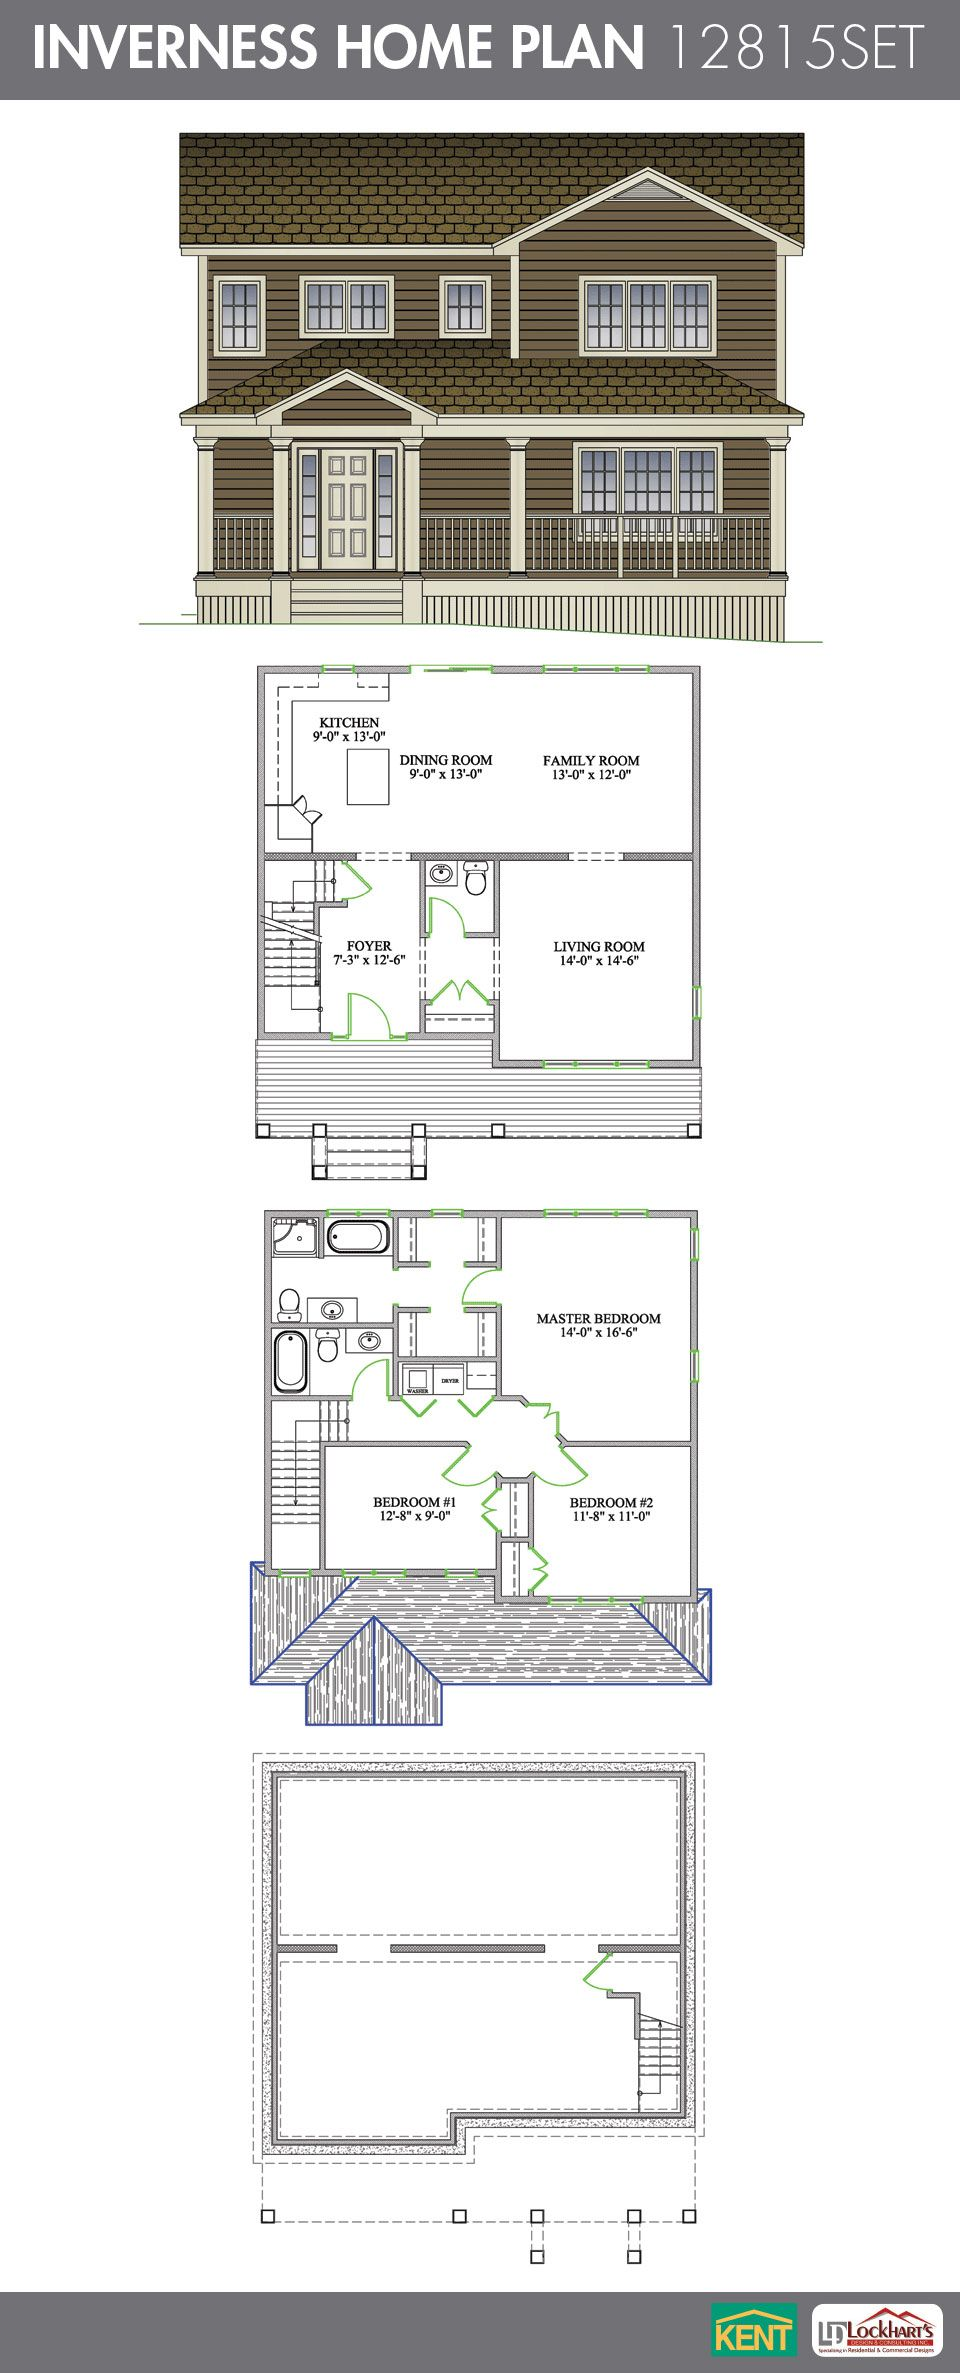 Inverness Home Plan House Plans Inverness Homes Kent Building